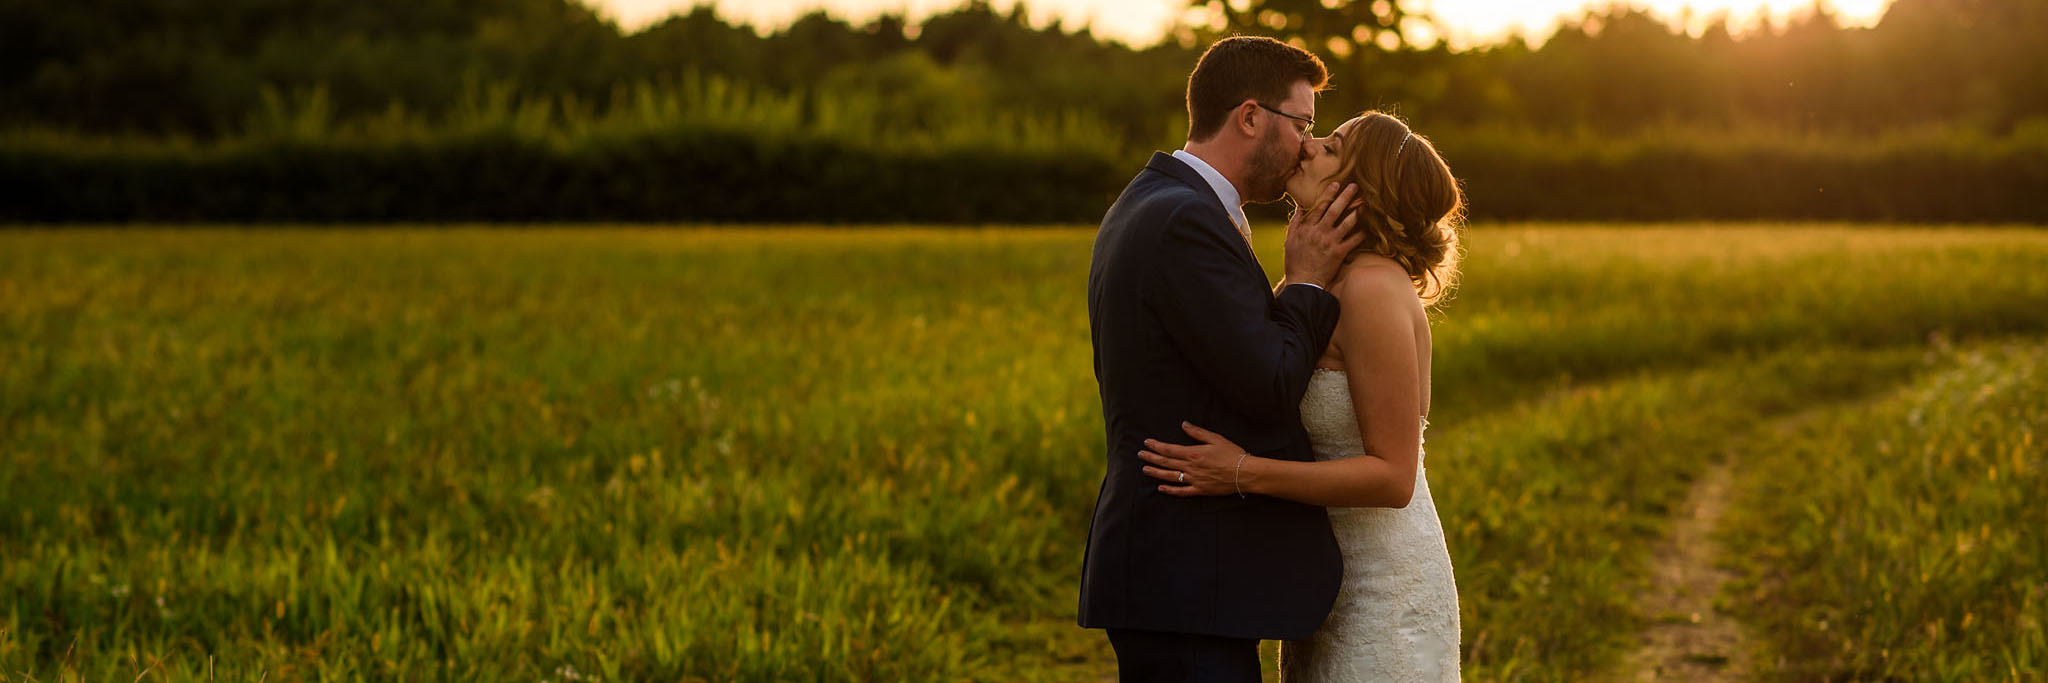 golden hour bride and groom portrait